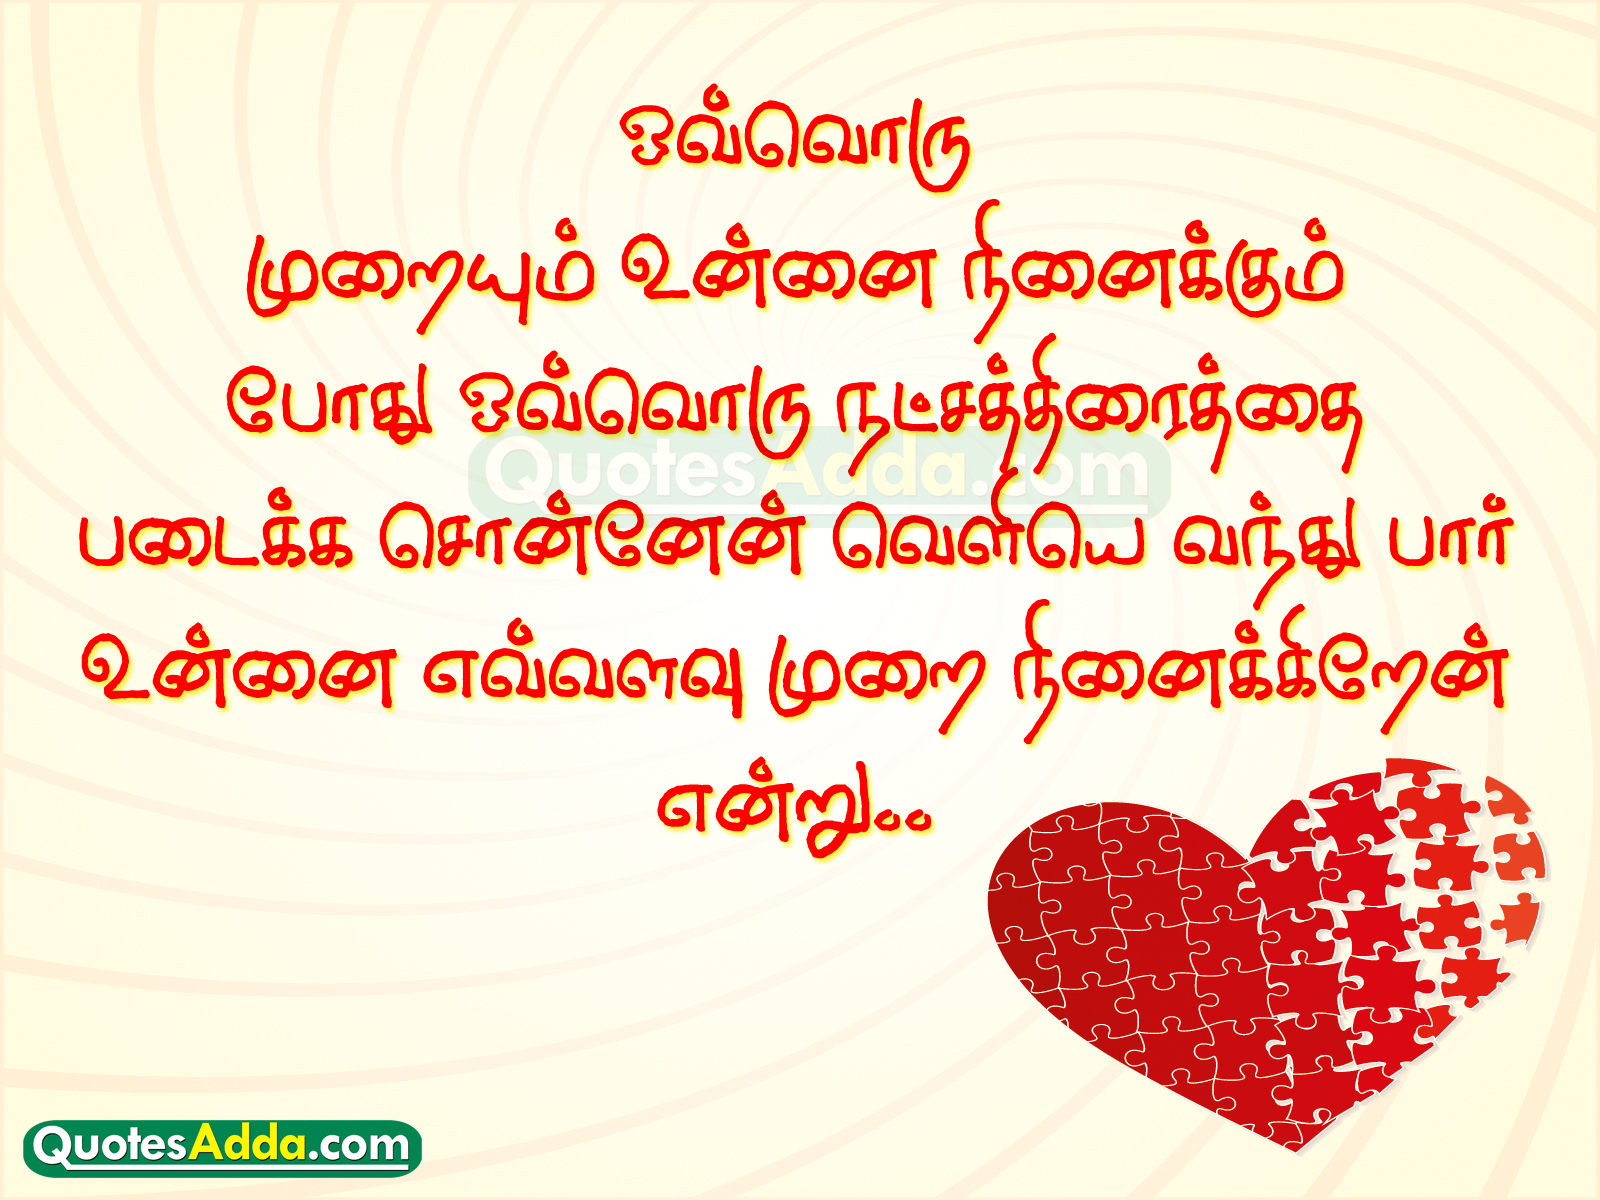 Tamil Love Quotes : Tamil Love Quotes Tamil Love Quotes